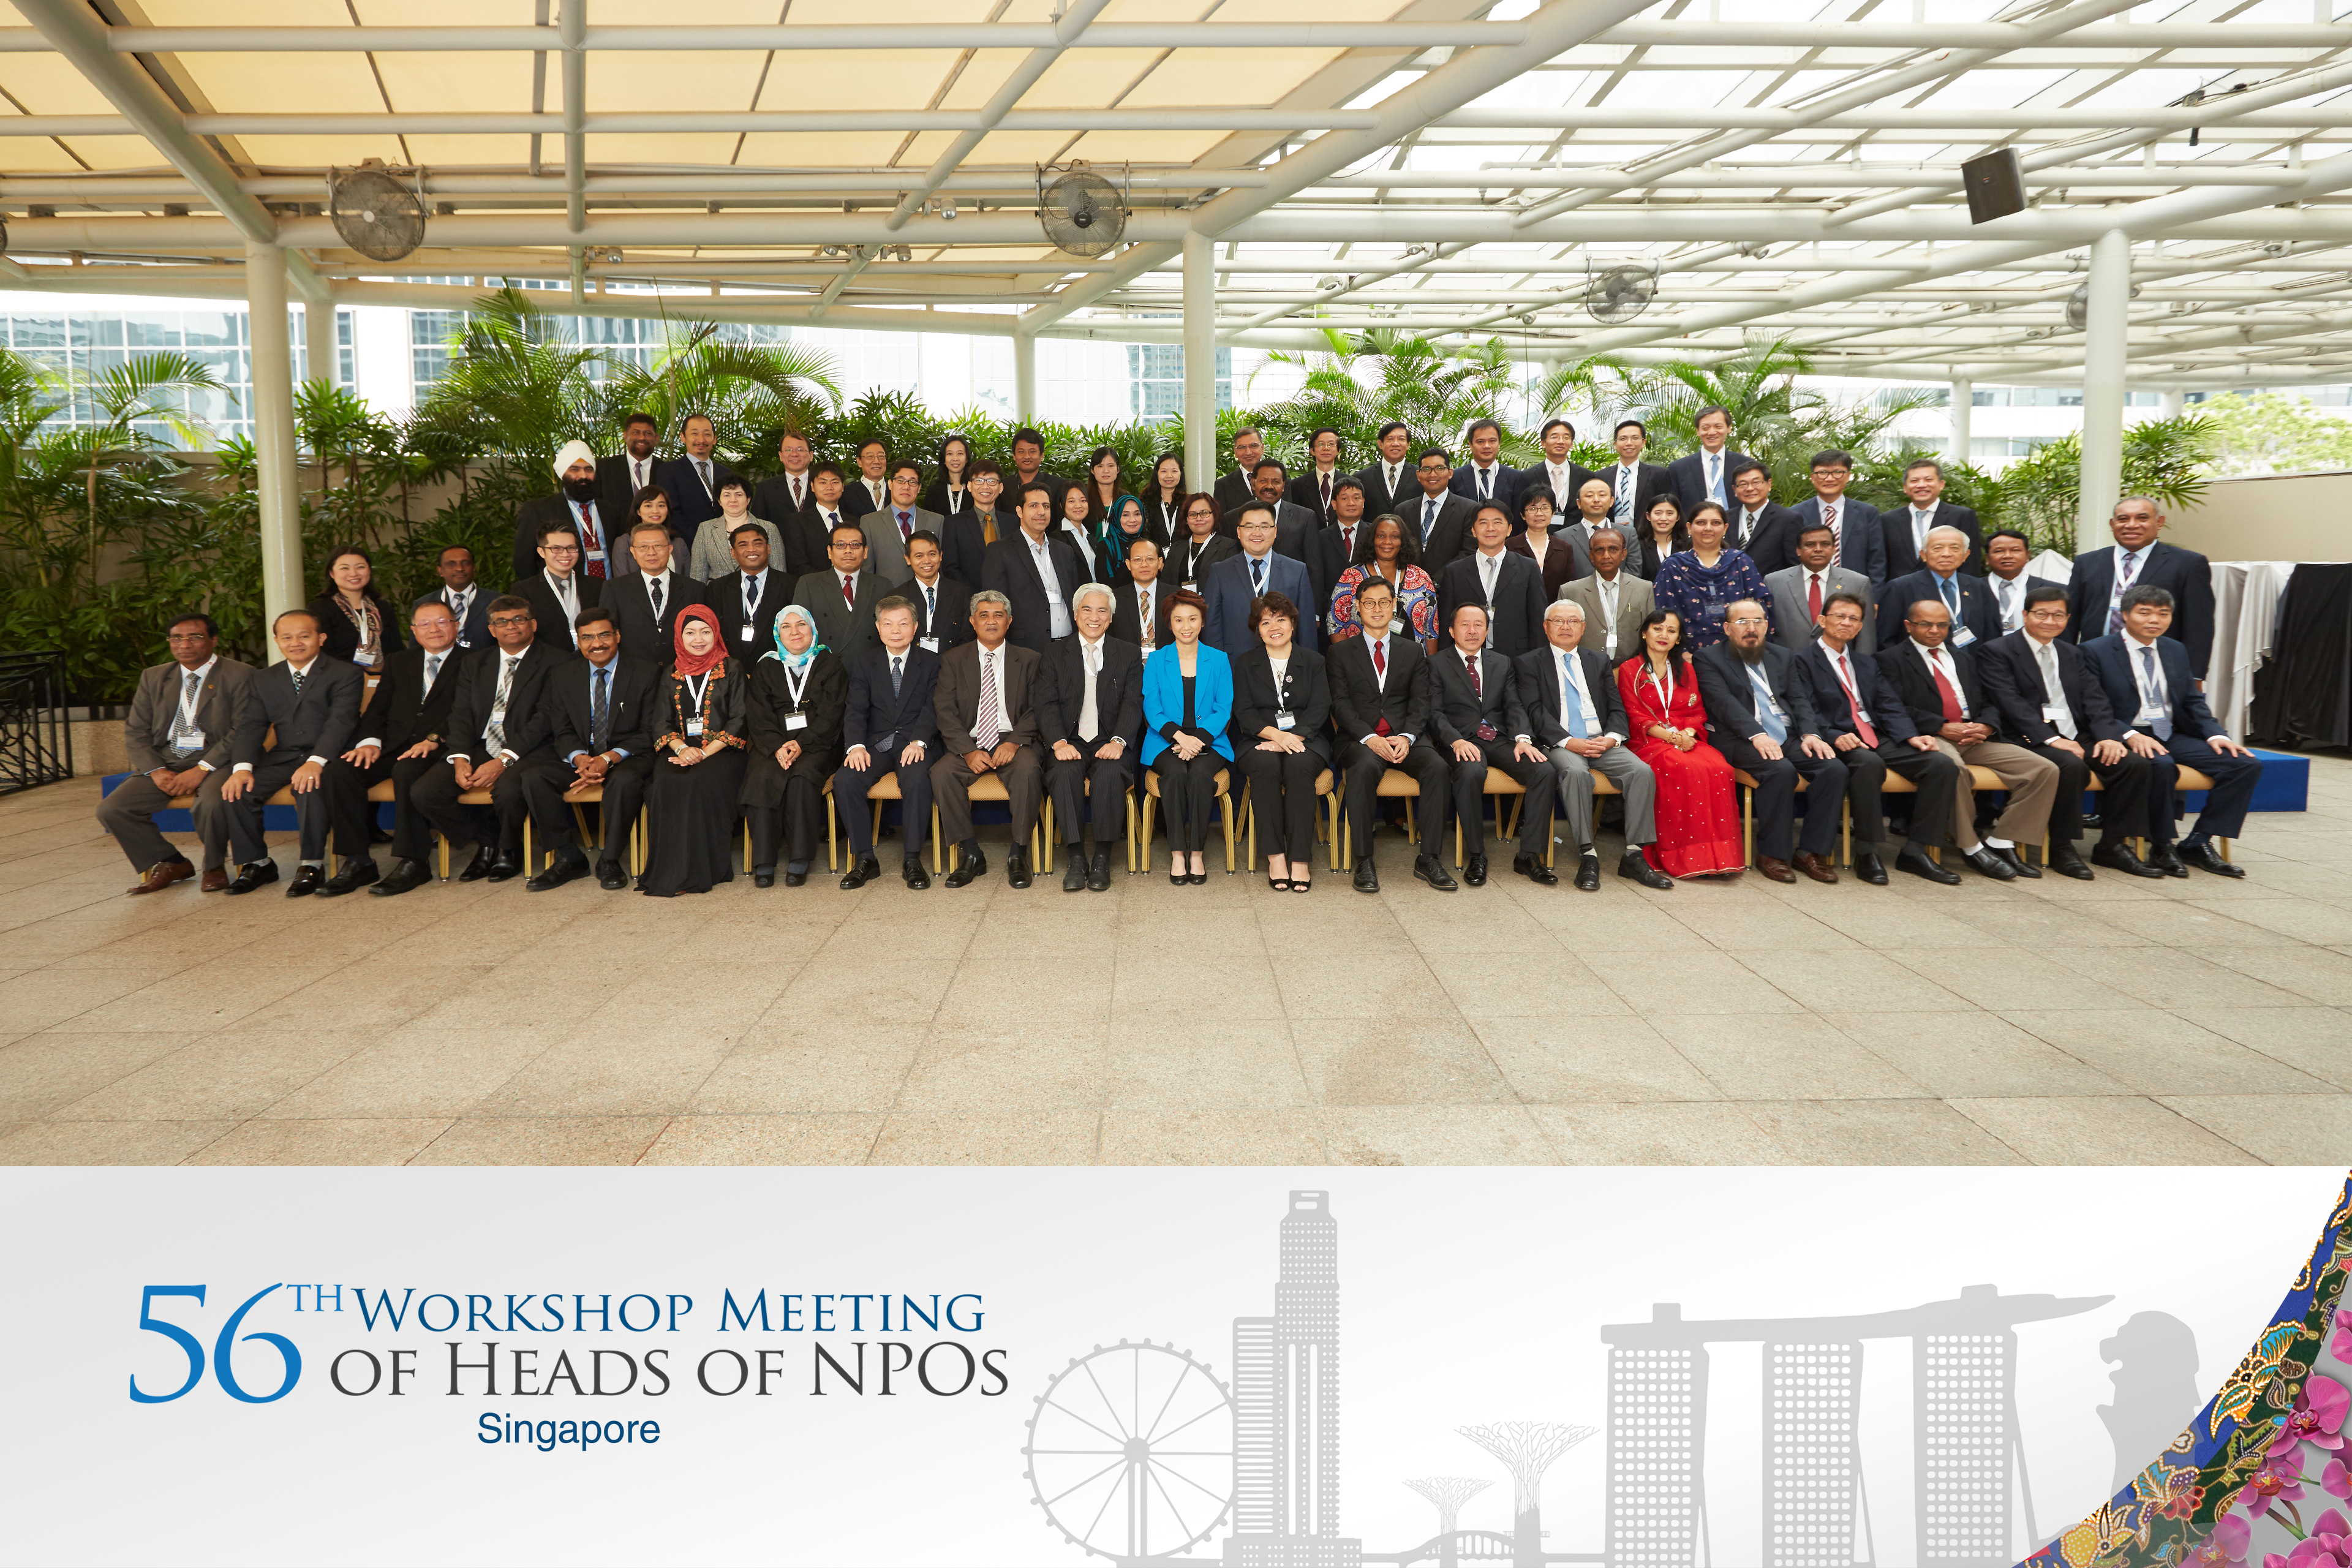 56th Workshop Meeting of Heads of NPOs.